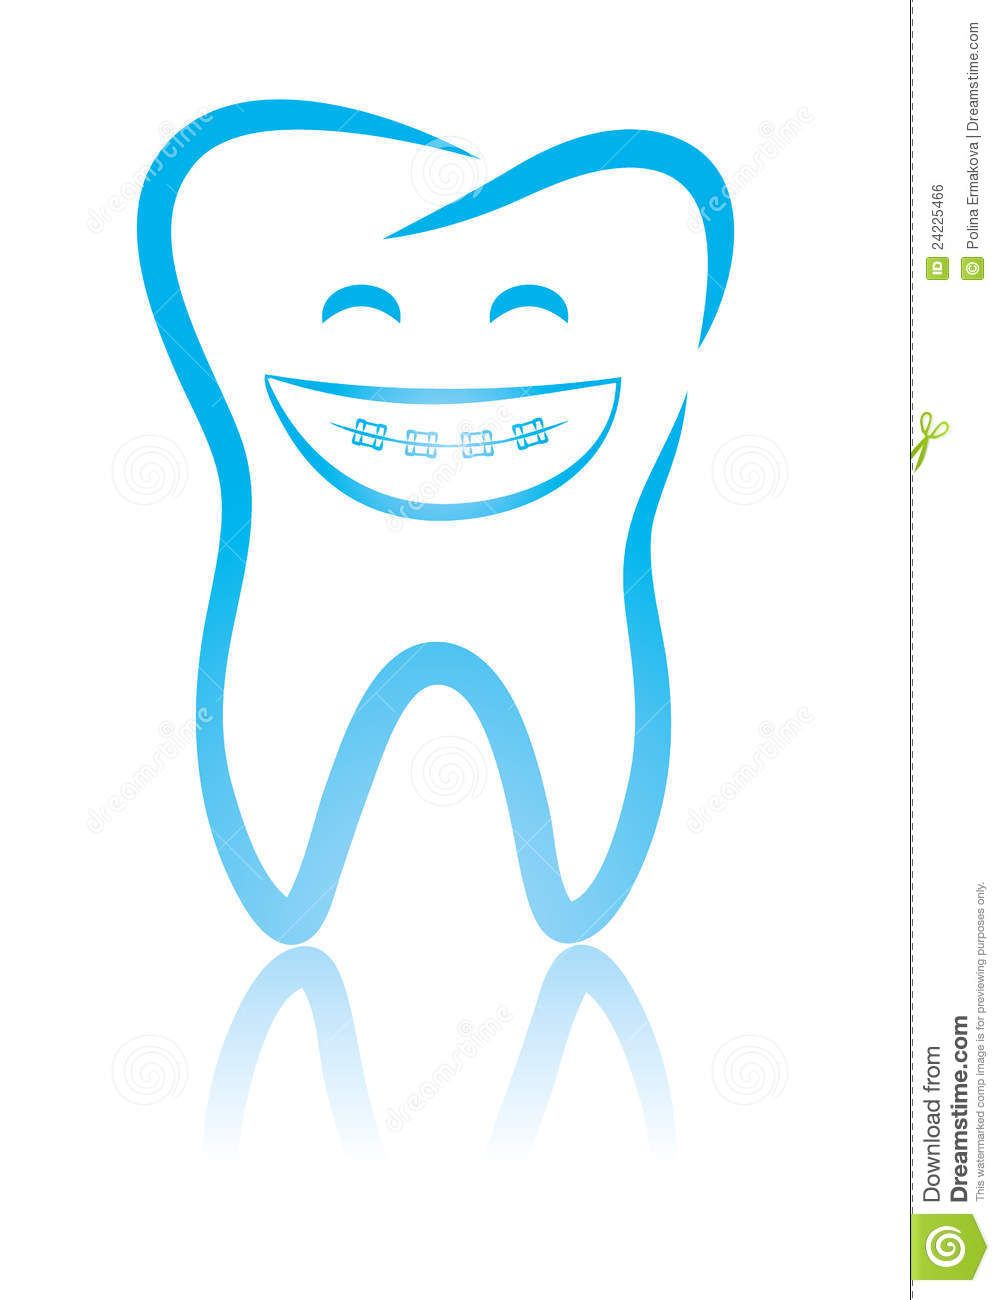 Smile Teeth Braces Clip Art Smile teeth braces clip art.